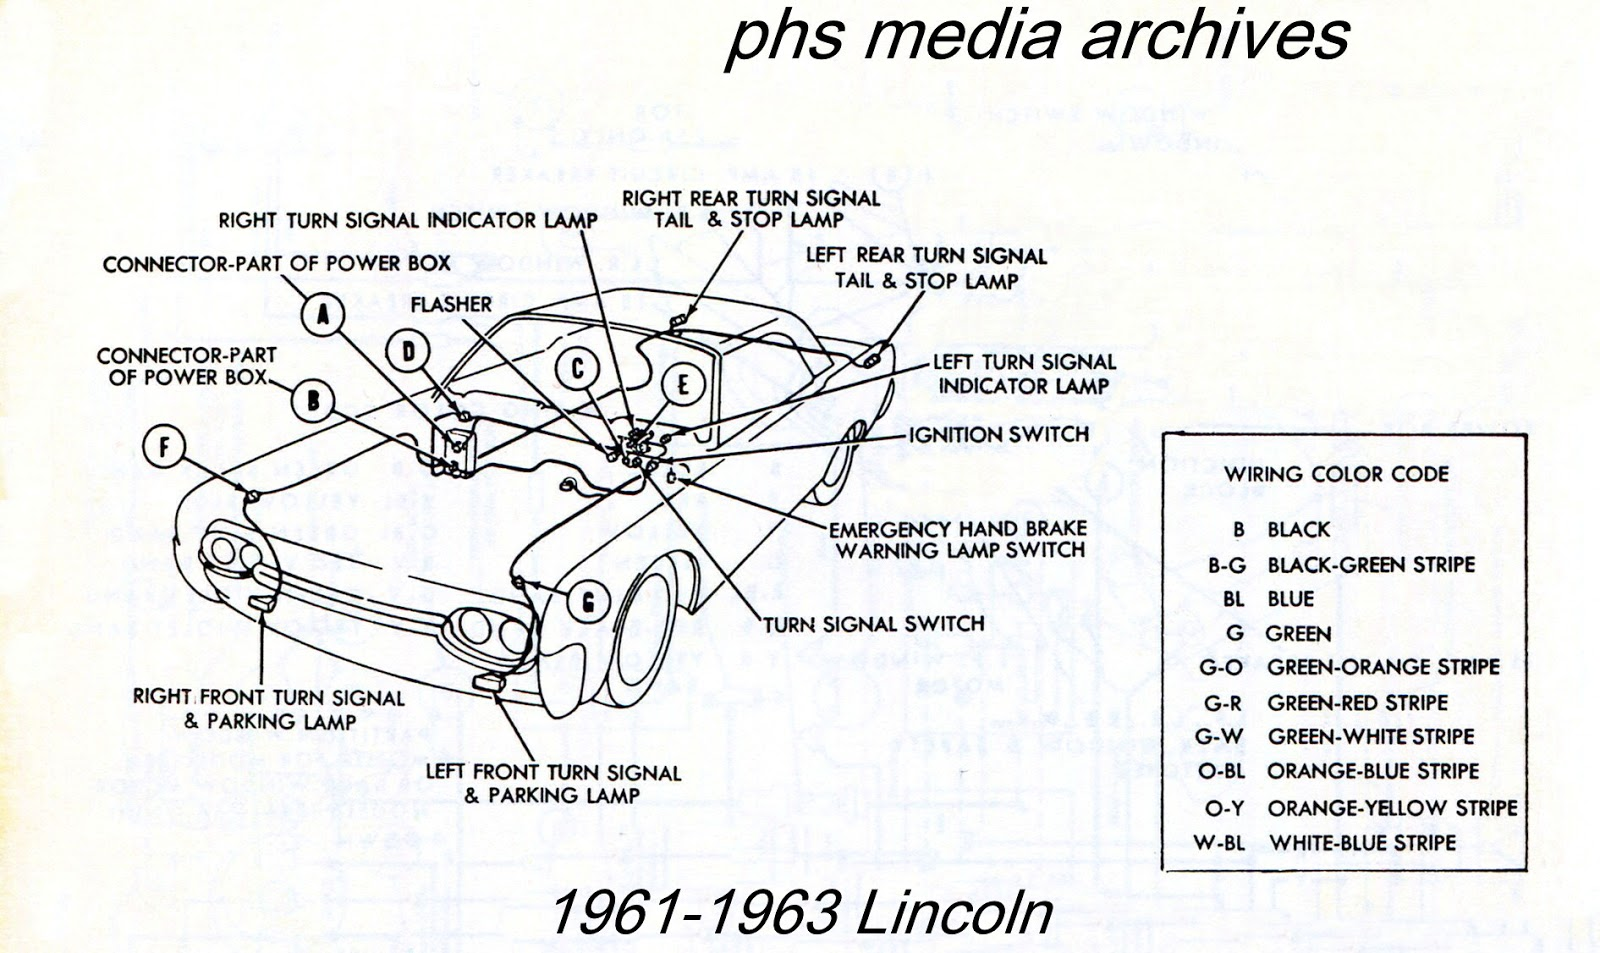 hight resolution of tech series 1960 1964 lincoln wiring diagrams phscollectorcarworld rh phscollectorcarworld blogspot com 1998 lincoln navigator wiring diagram lincoln